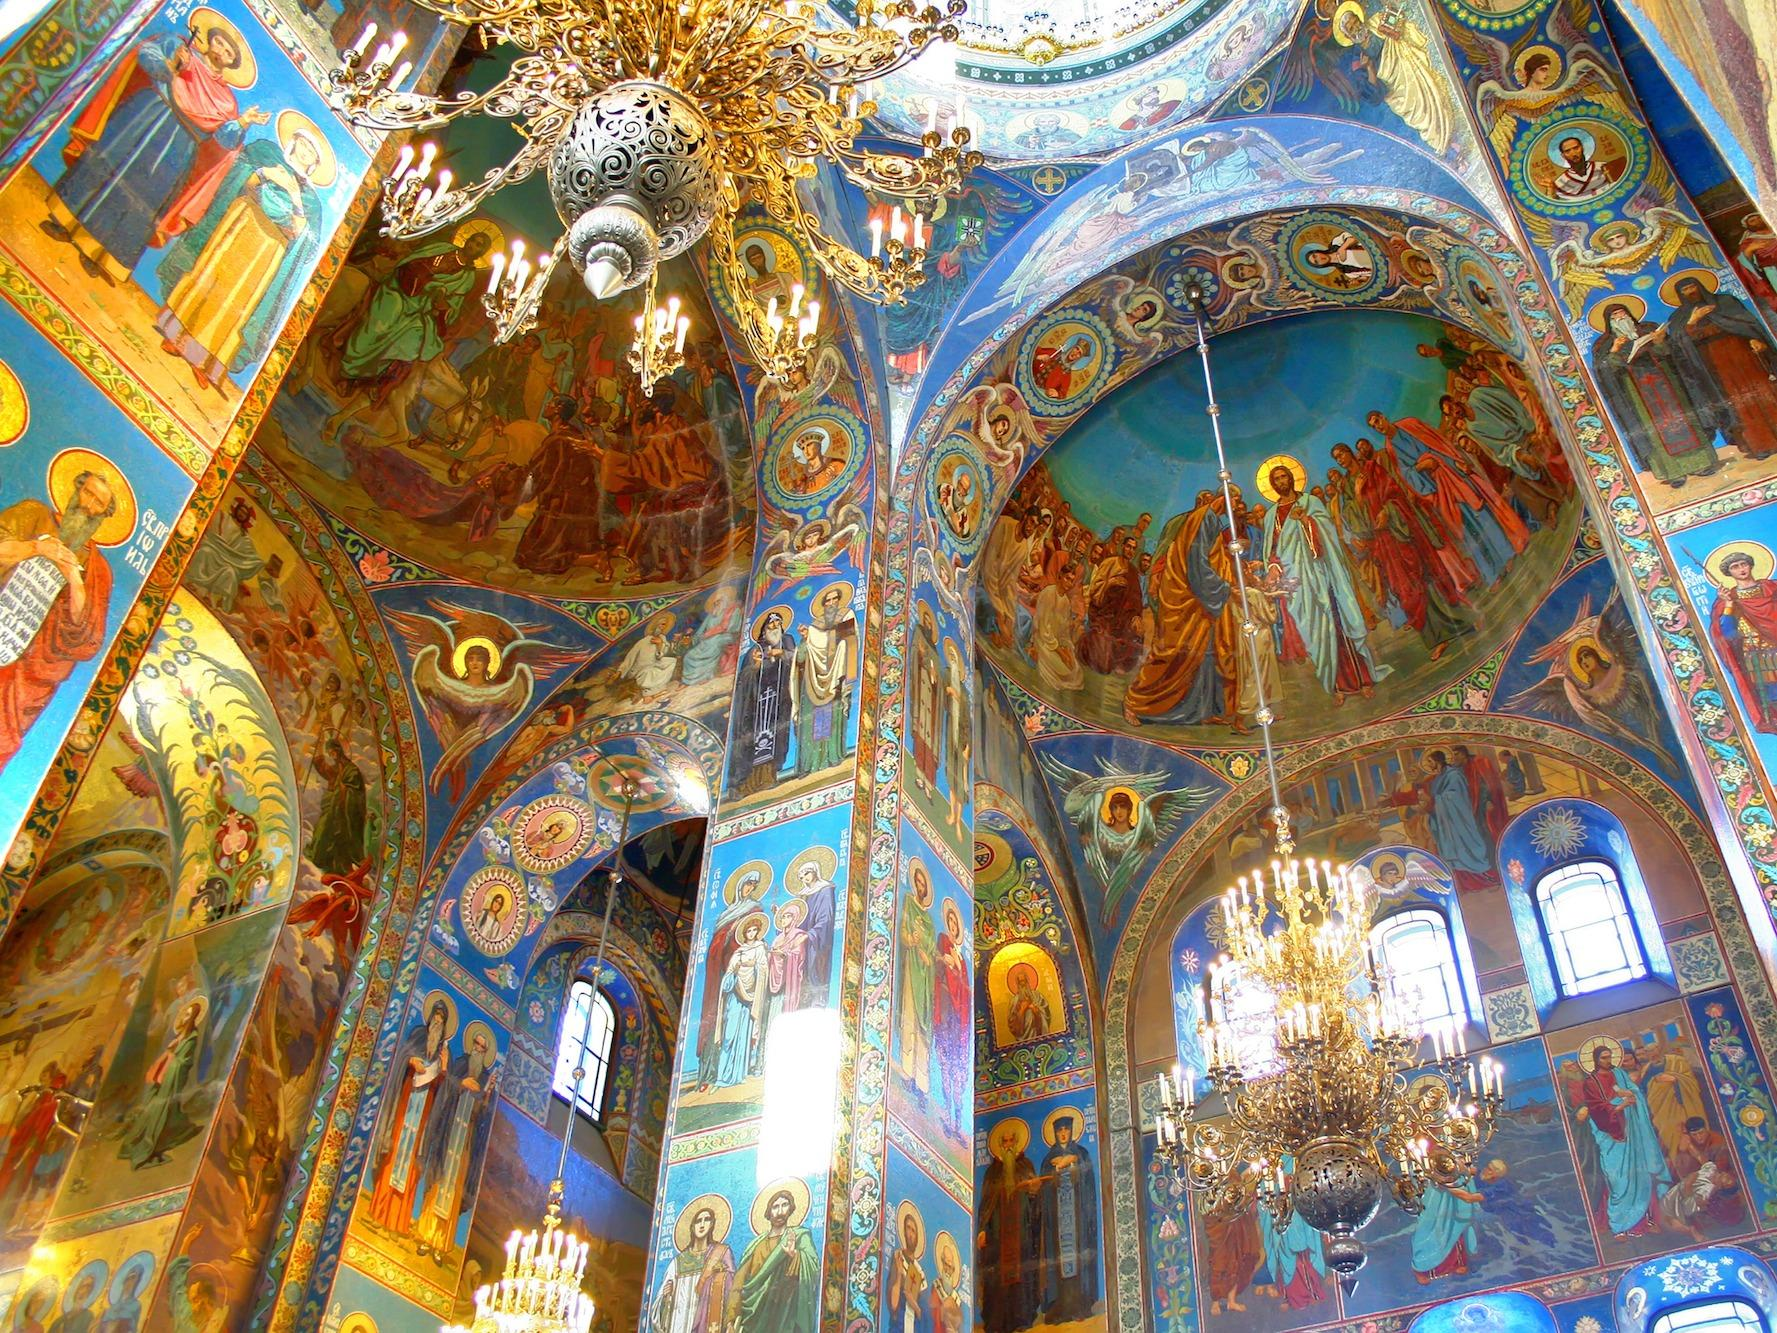 http://www.businessinsider.in/photo/49433641/50-places-everyone-should-visit-in-europe/Marvel-at-the-ornate-interior-of-the-Church-of-the-Savior-on-Spilled-Blood-in-St-Petersburg-Russia-which-is-covered-in-colorful-mosaics-.jpg